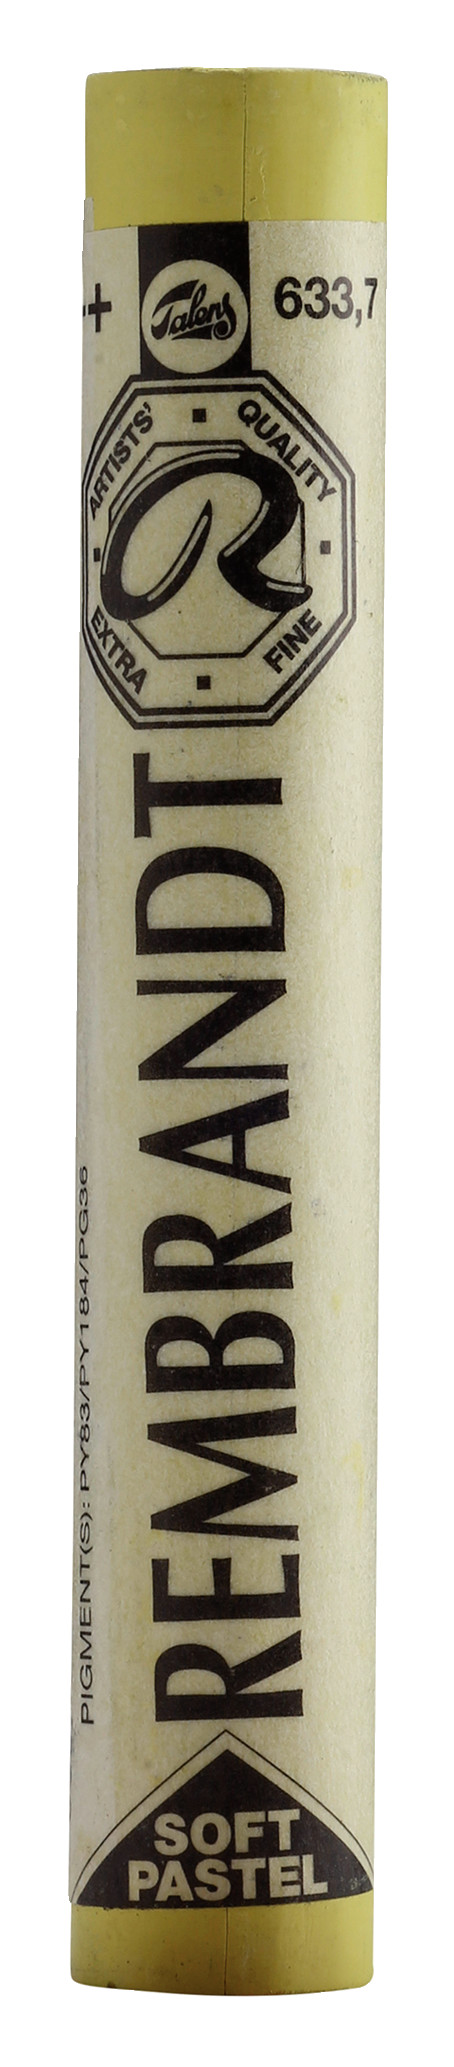 Rembrandt Soft Pastel Round Full Stick Permanent Yellow Green(7) (633.7)